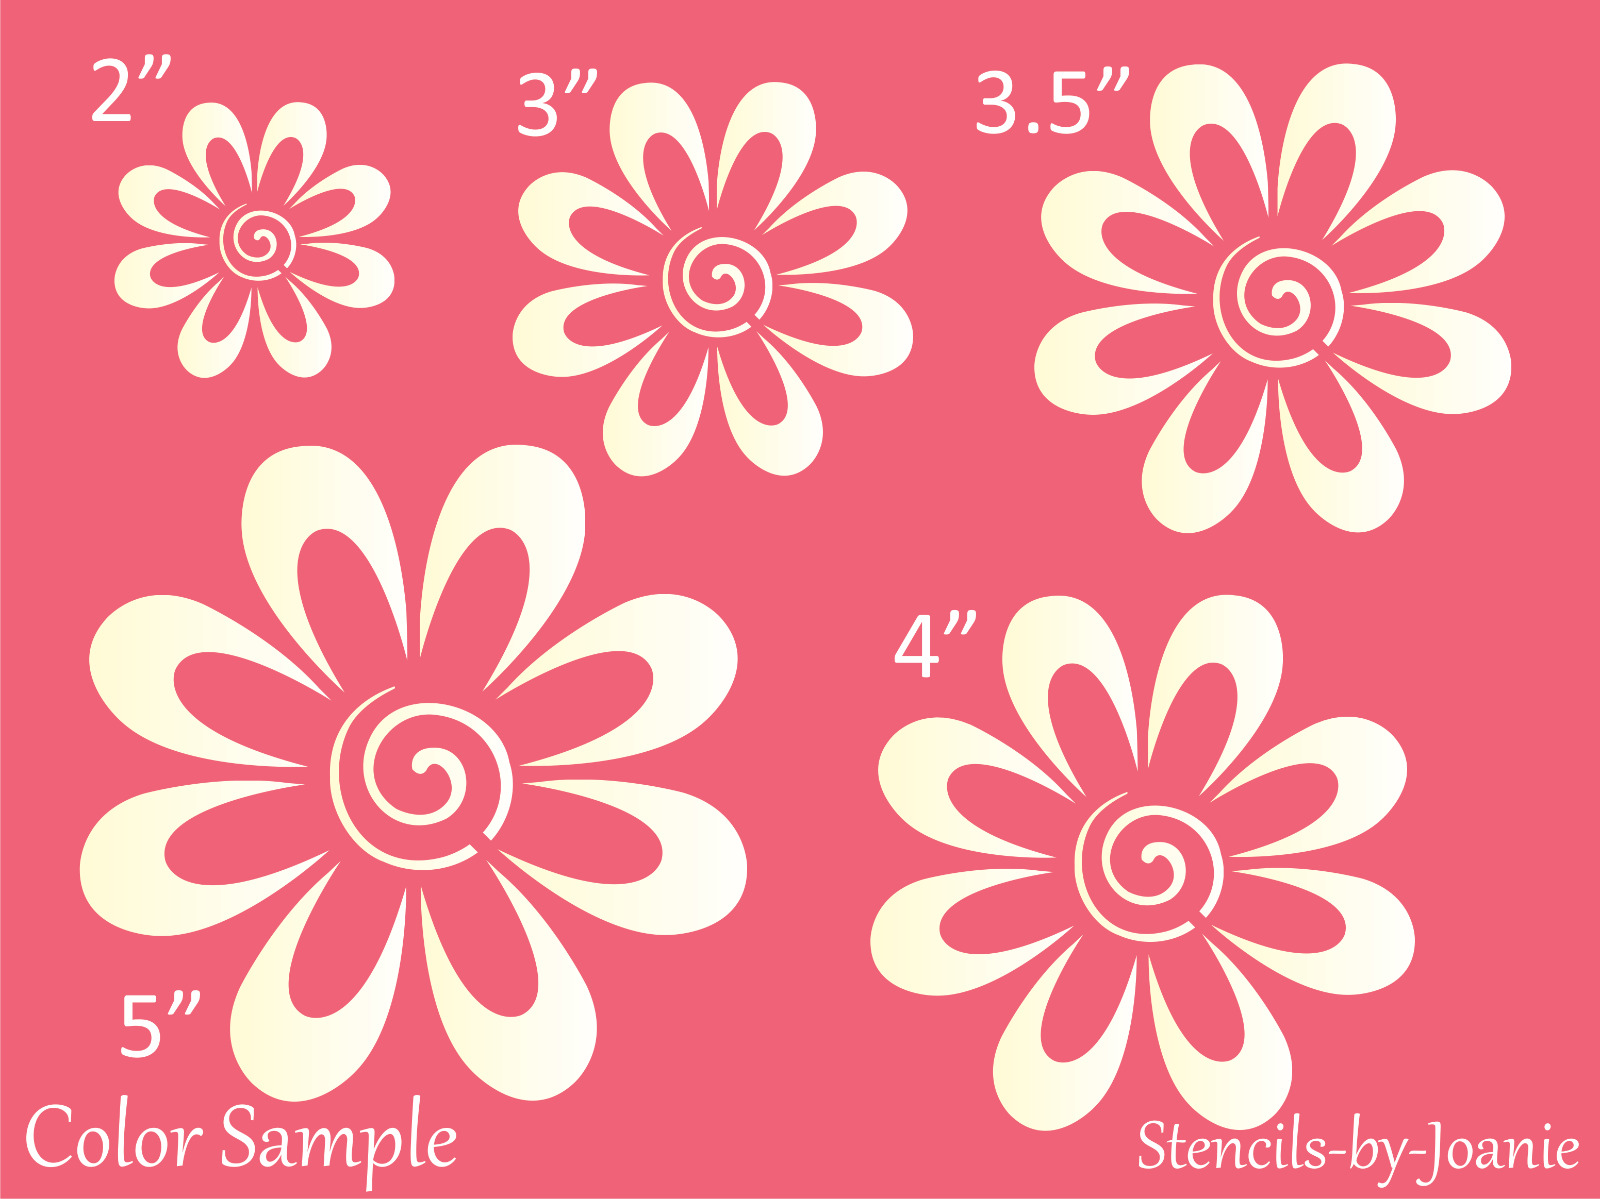 Stencil Garden Flower Swirl Daisy Country French Cottage Easter